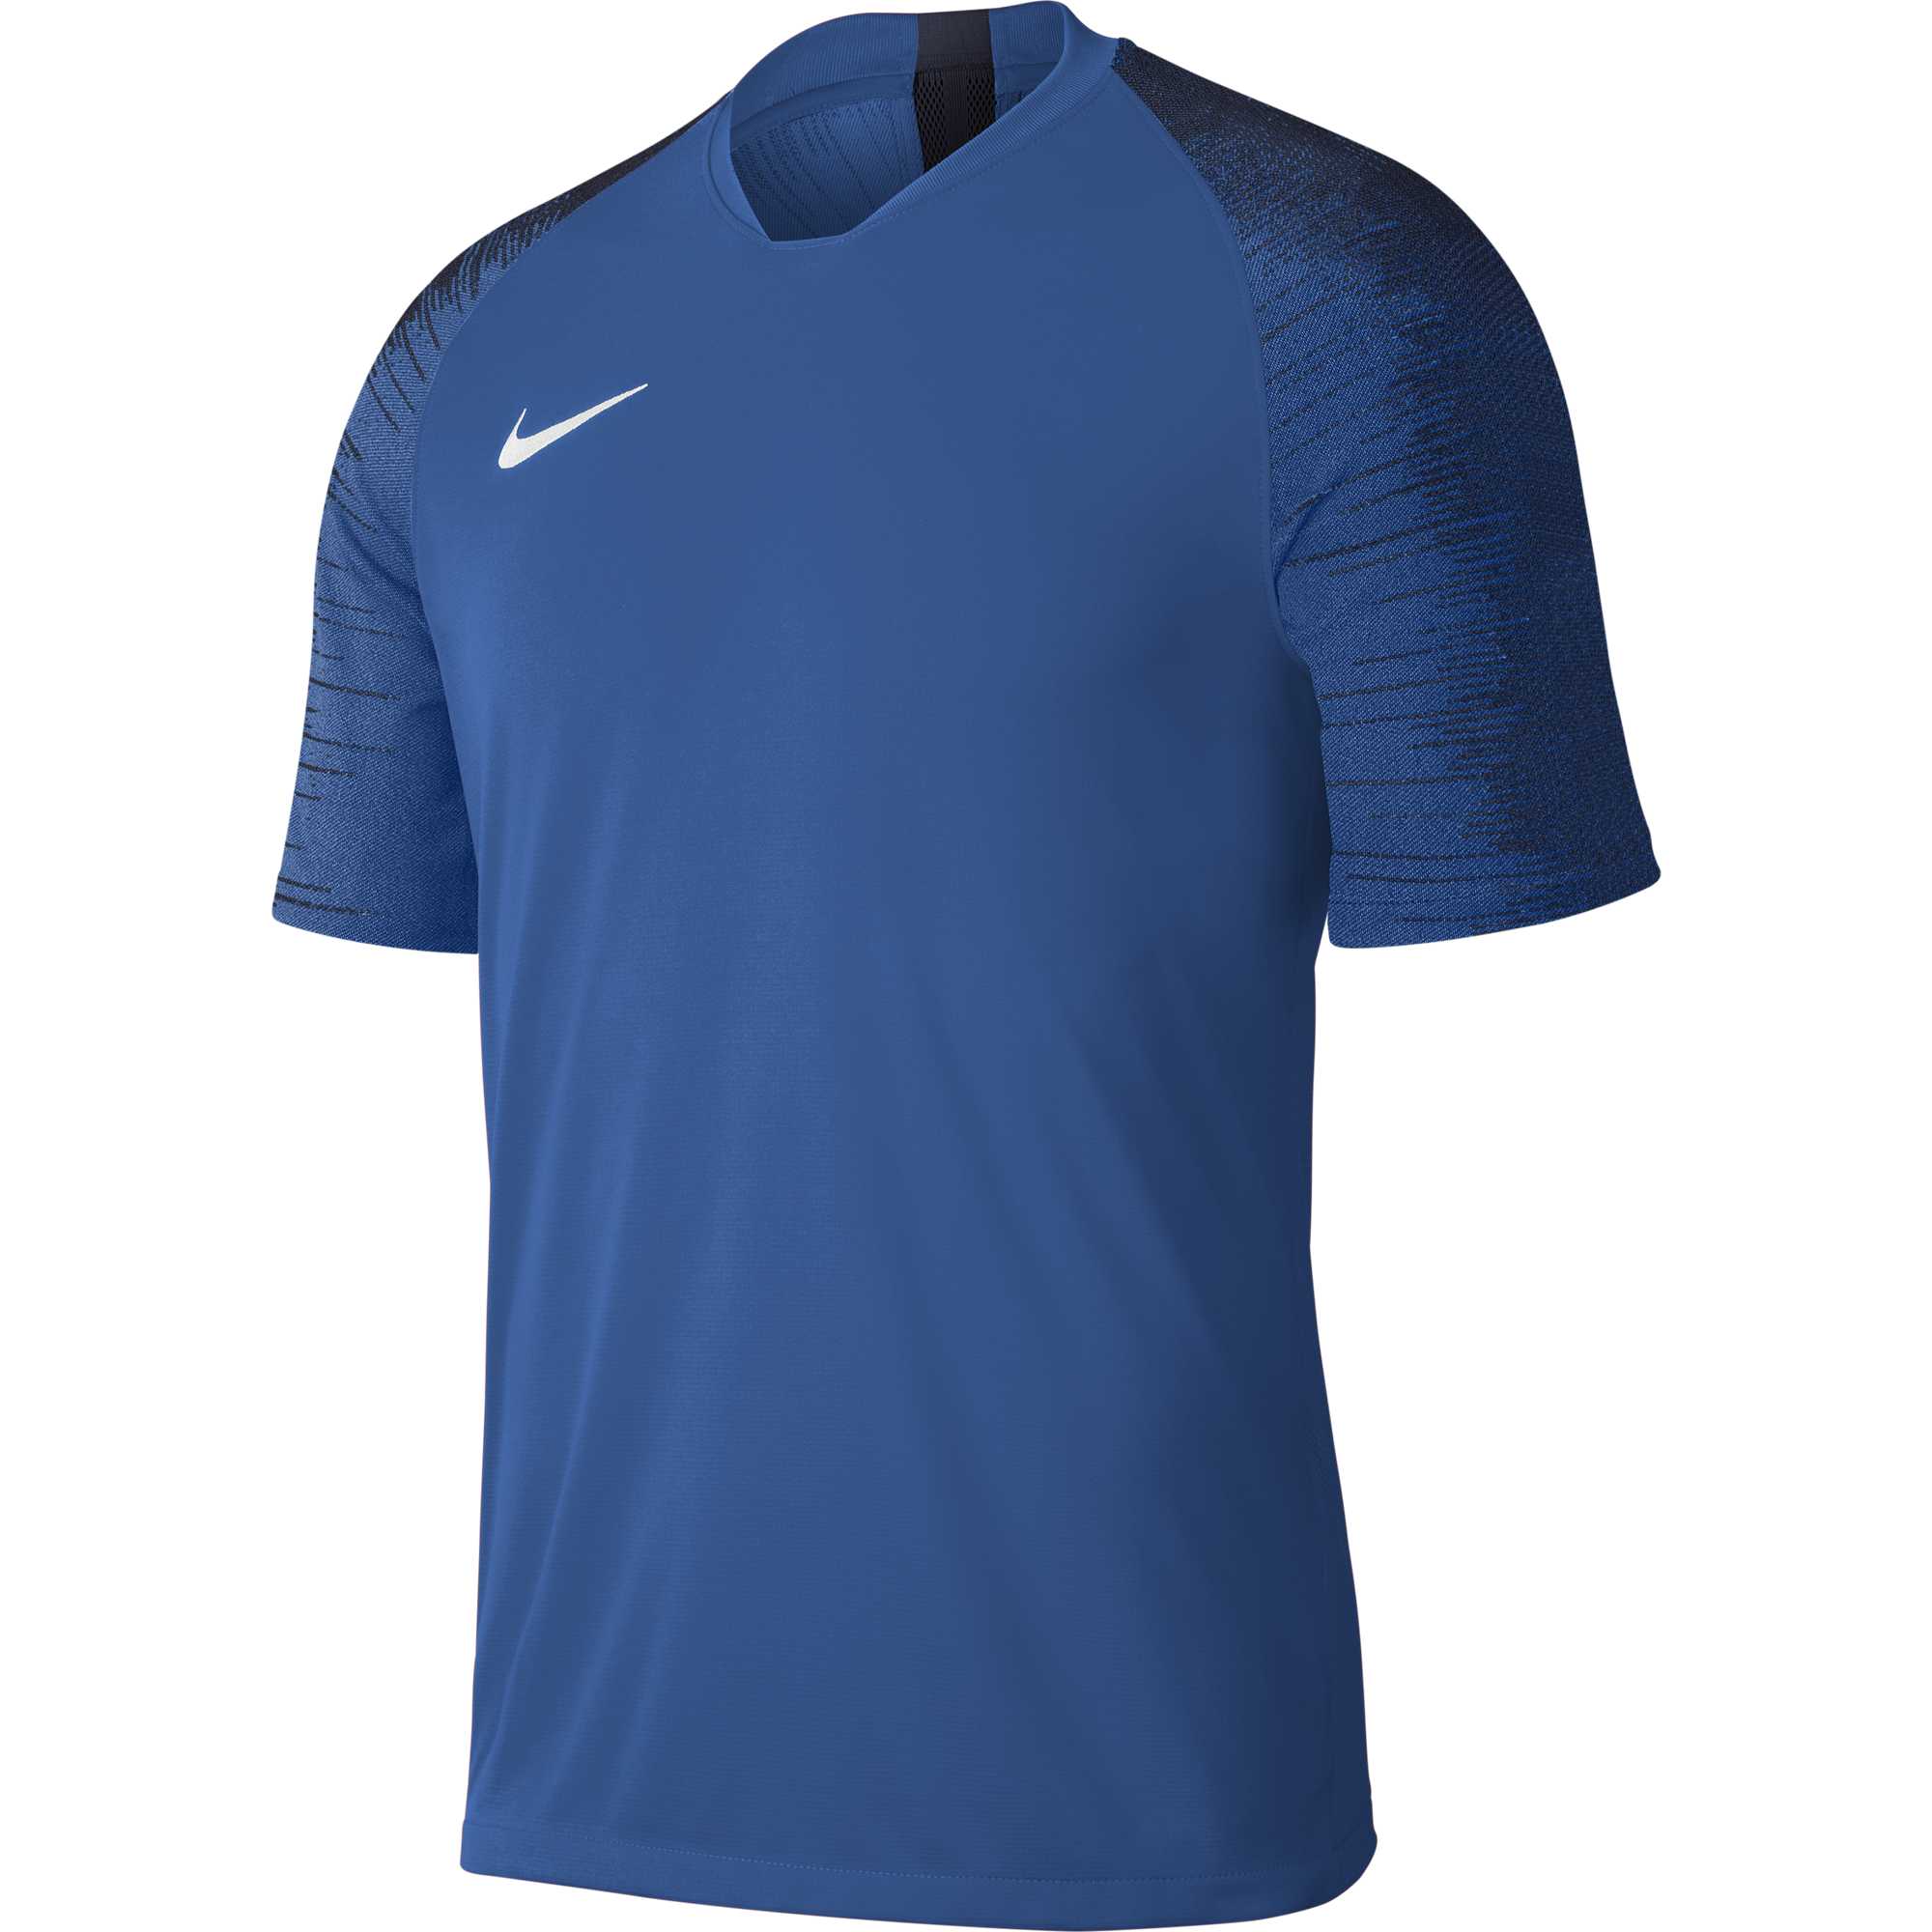 Nike strike Jersey (royal)